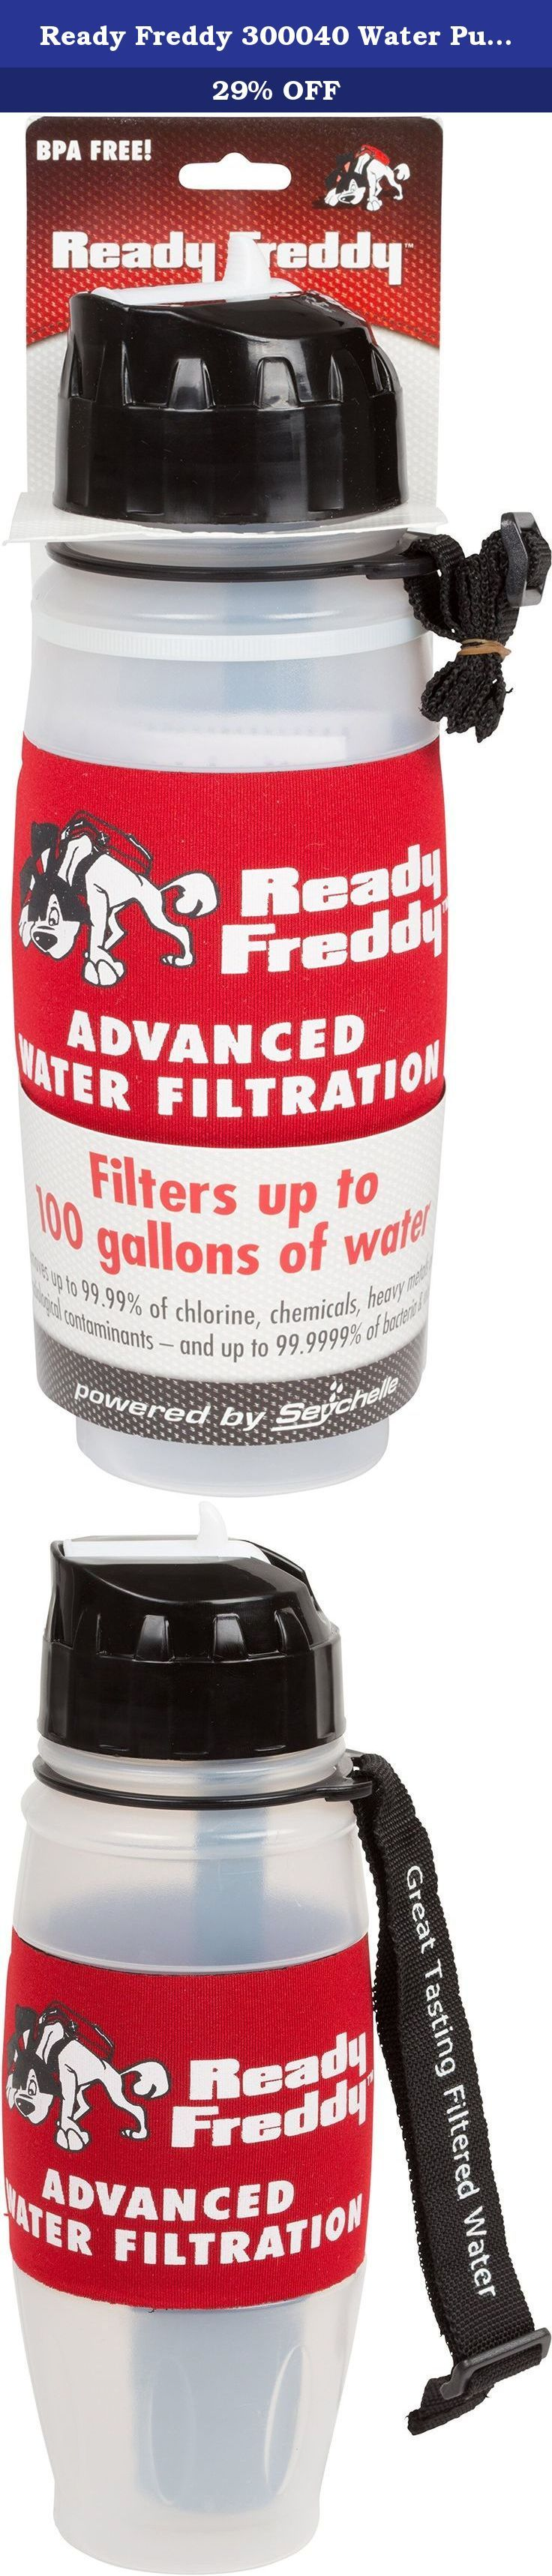 10 Ideas About Water Purification On Pinterest